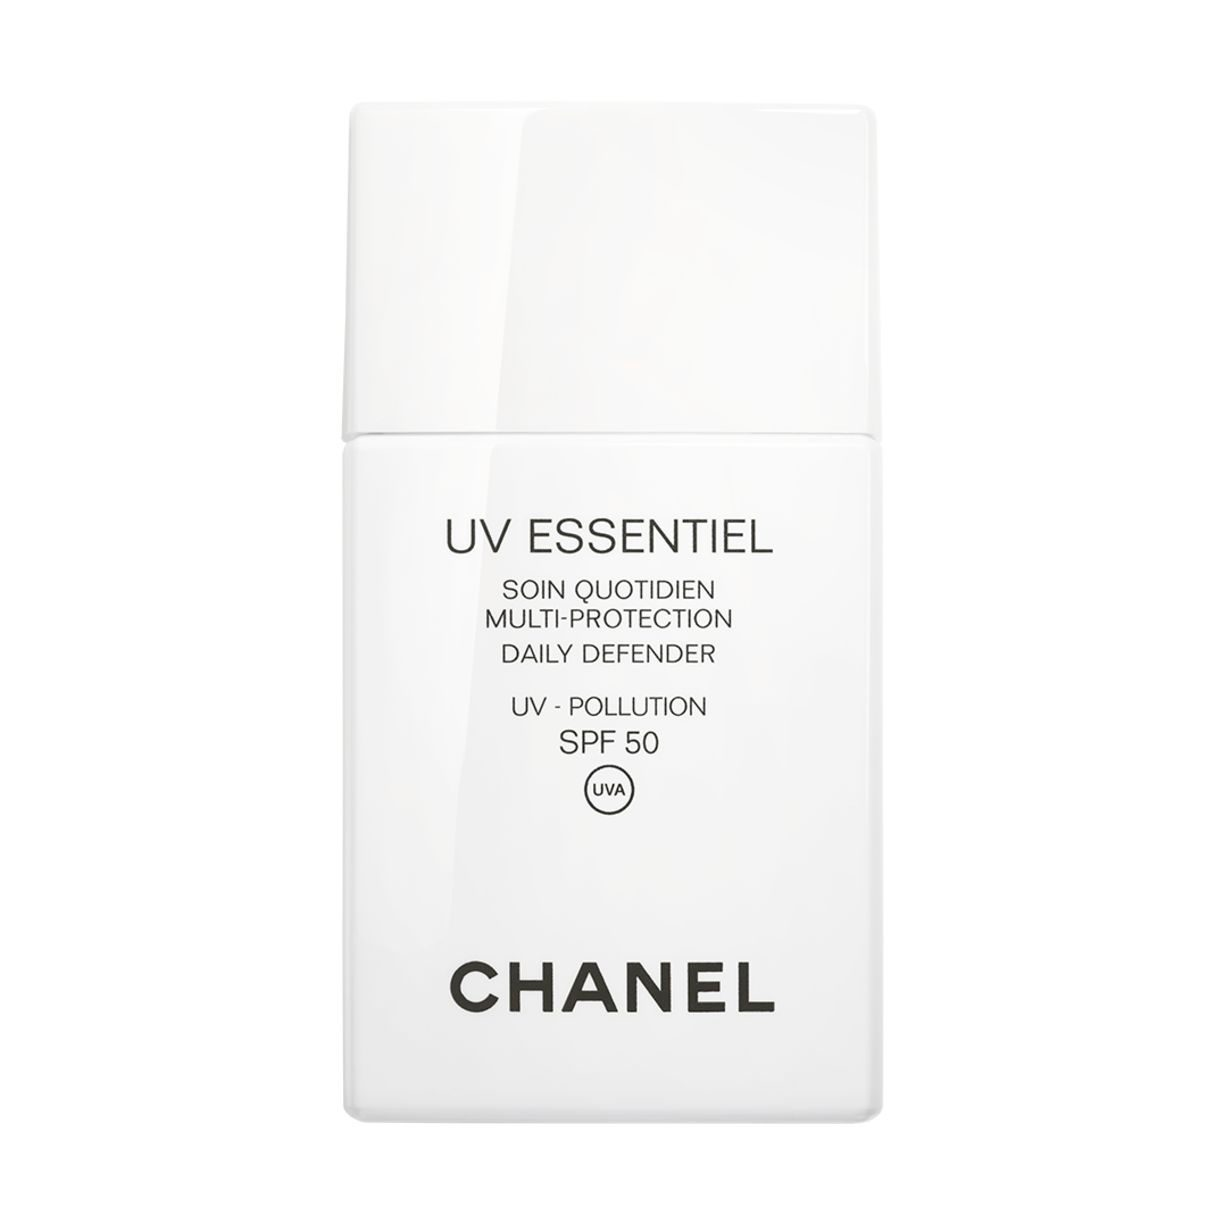 UV ESSENTIEL MULTI-PROTECTION DAILY DEFENDER UV - POLLUTION SPF 50 BOTTLE 30ML